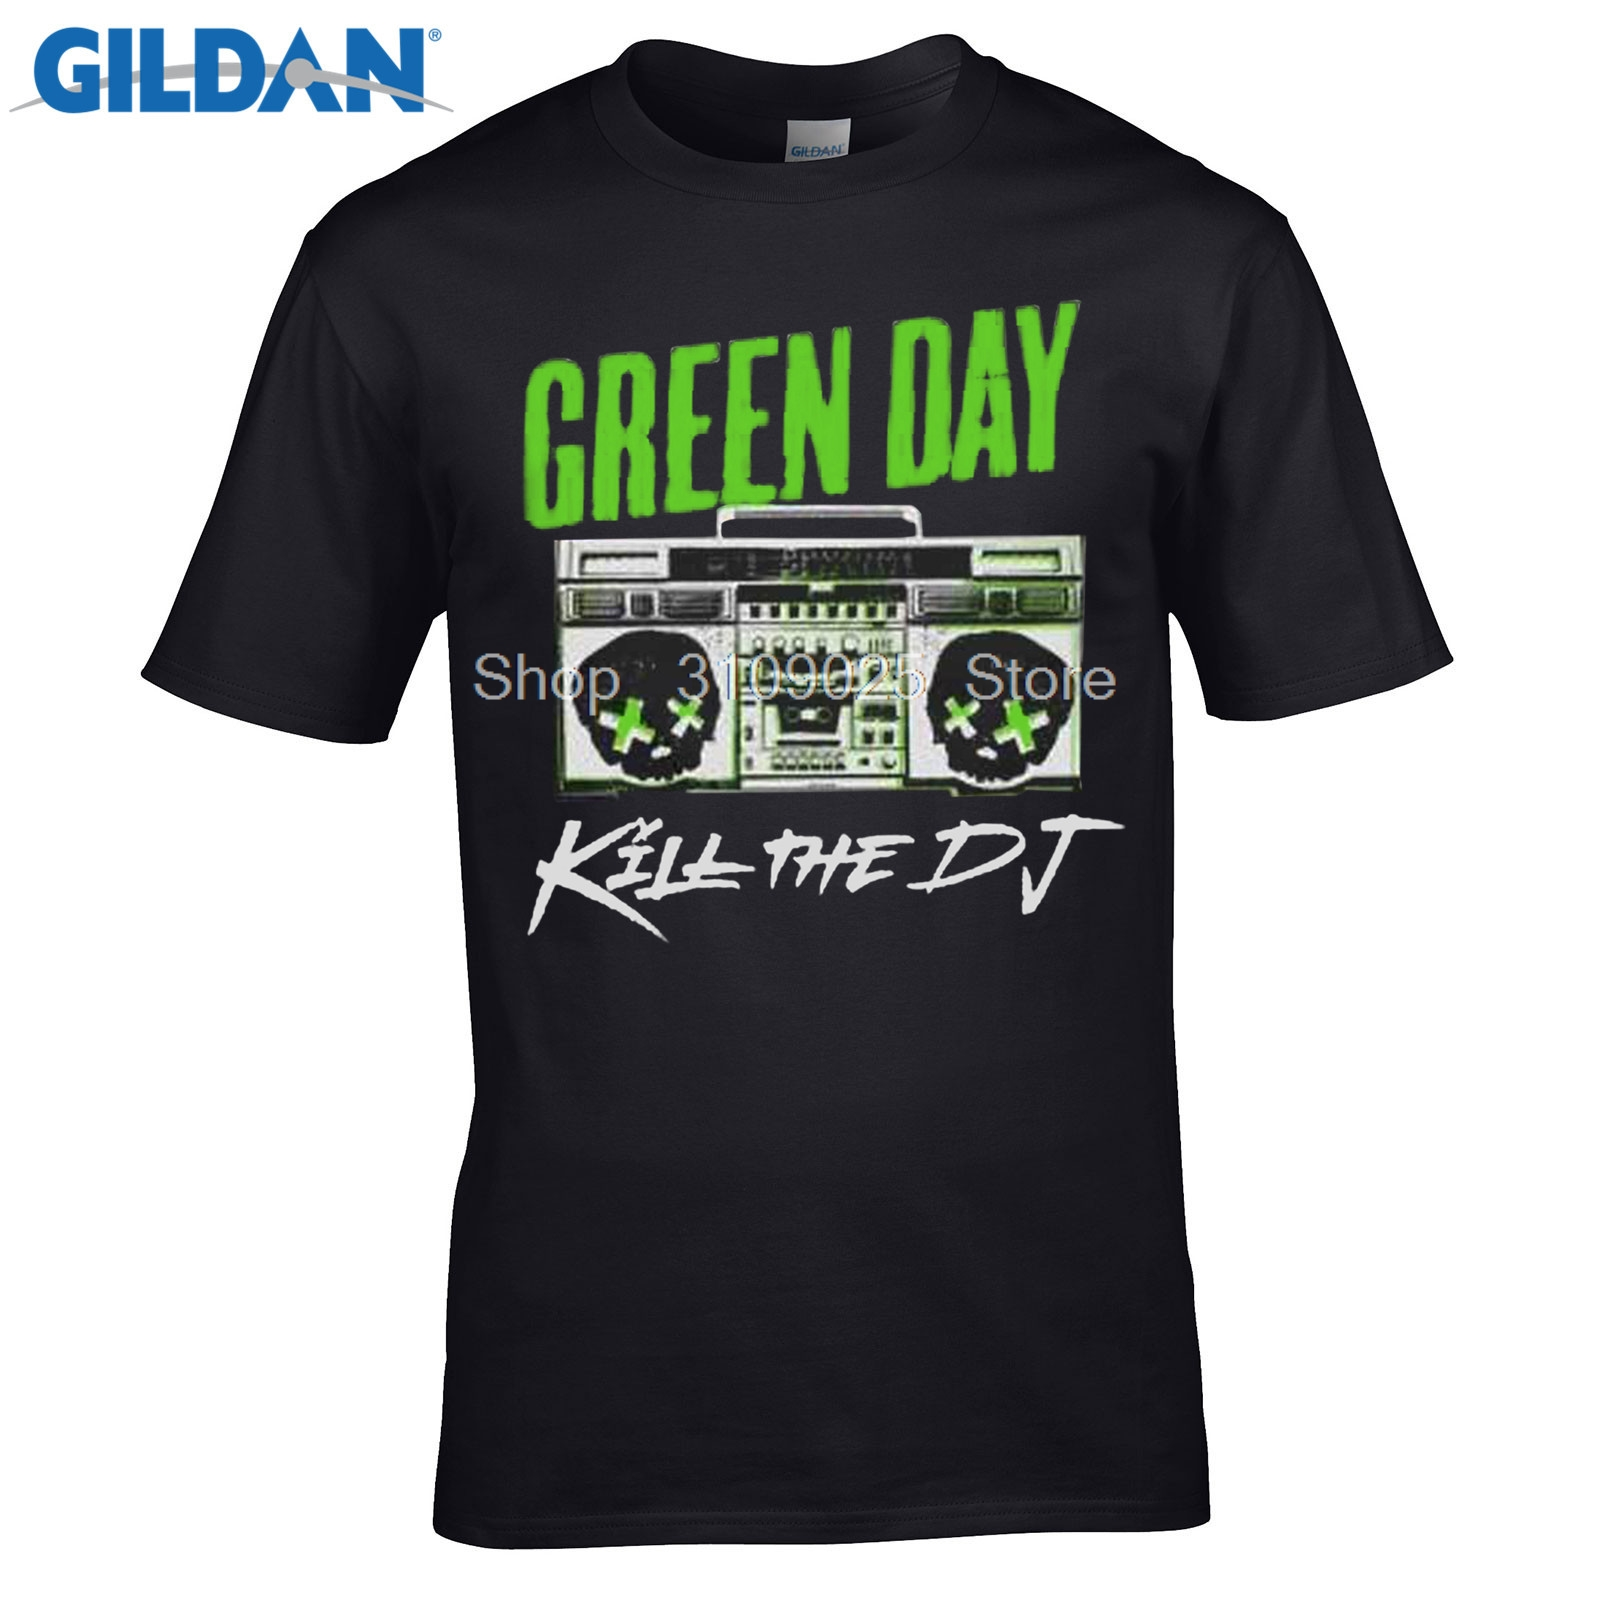 2019 New Arrivals Green Day Kill The Dj T Shirt Band Merch Rock Pop Punk Billie Armstrong Hipster Style Casual T Shirt